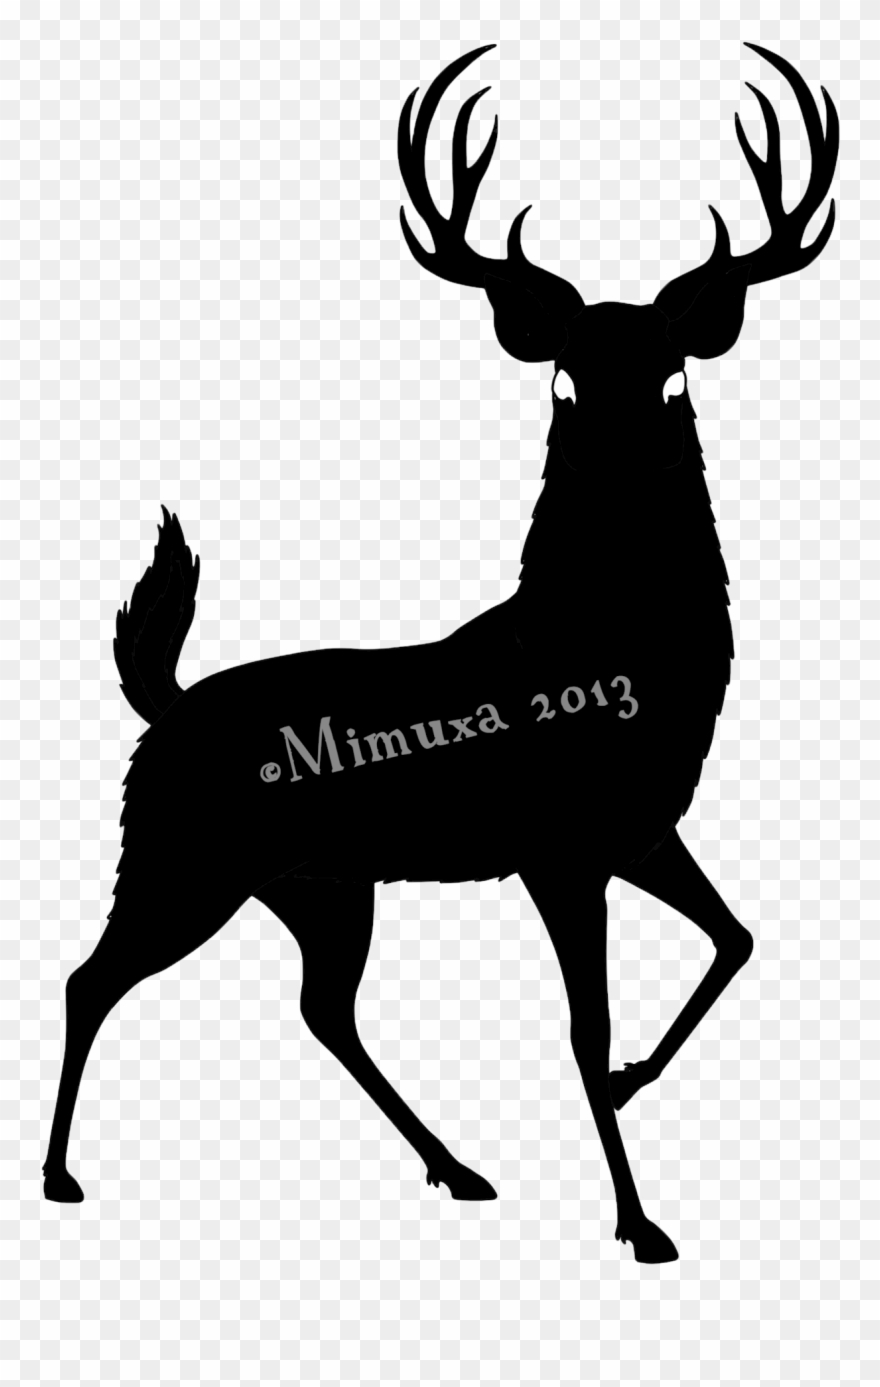 Deer Silhouette Clipart (#253516).